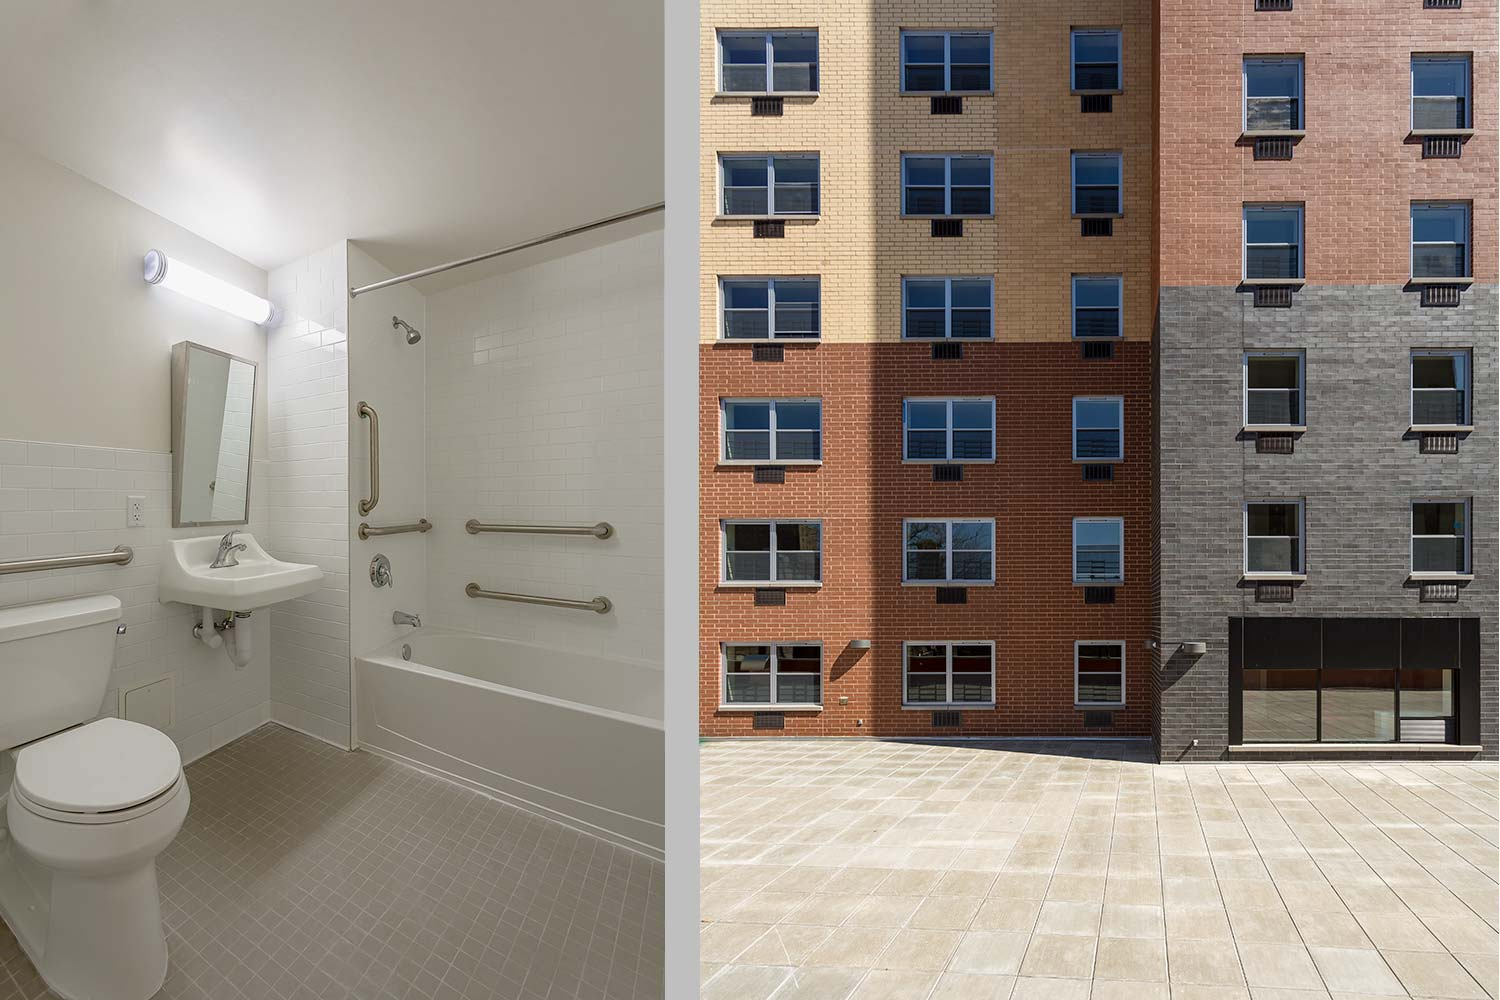 A stellar example of how toxic property can be successfully transformed into high quality, affordable housing.